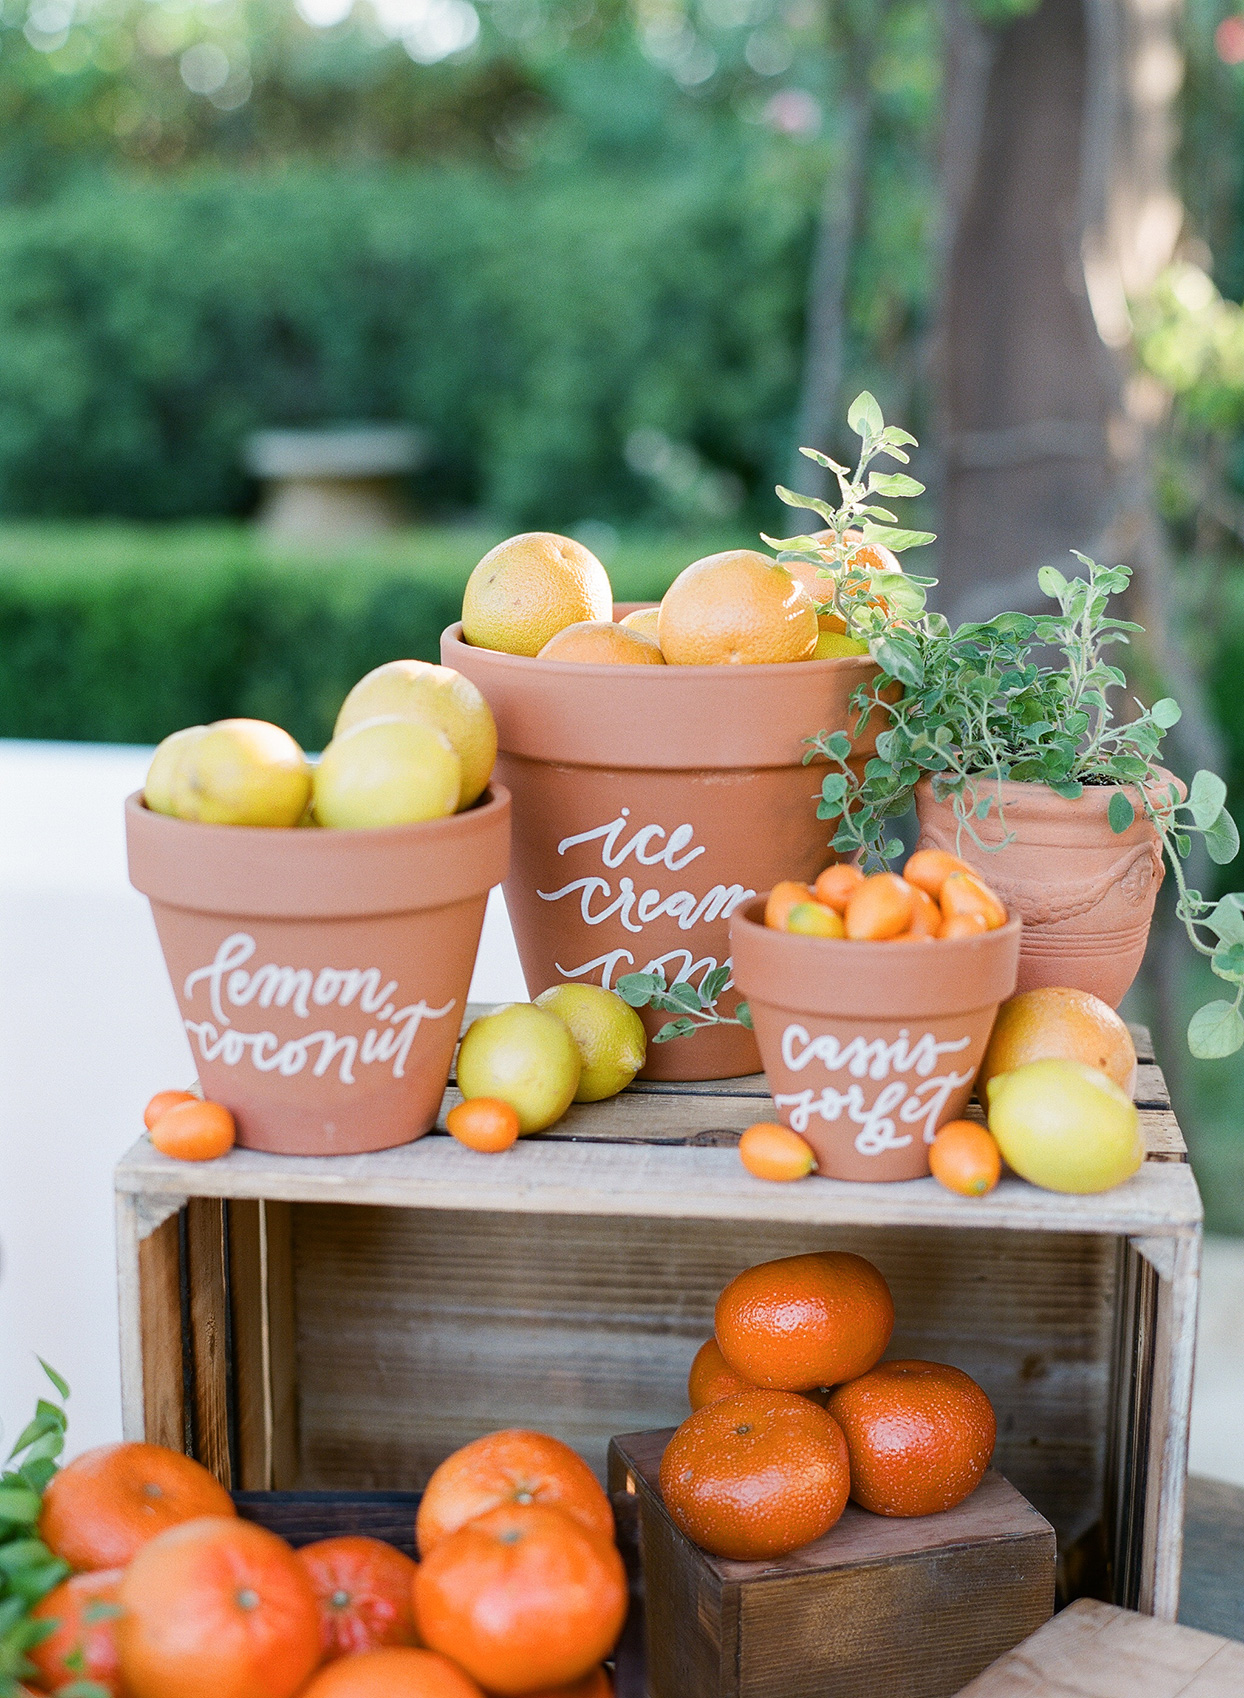 terra cotta pots with fresh produce